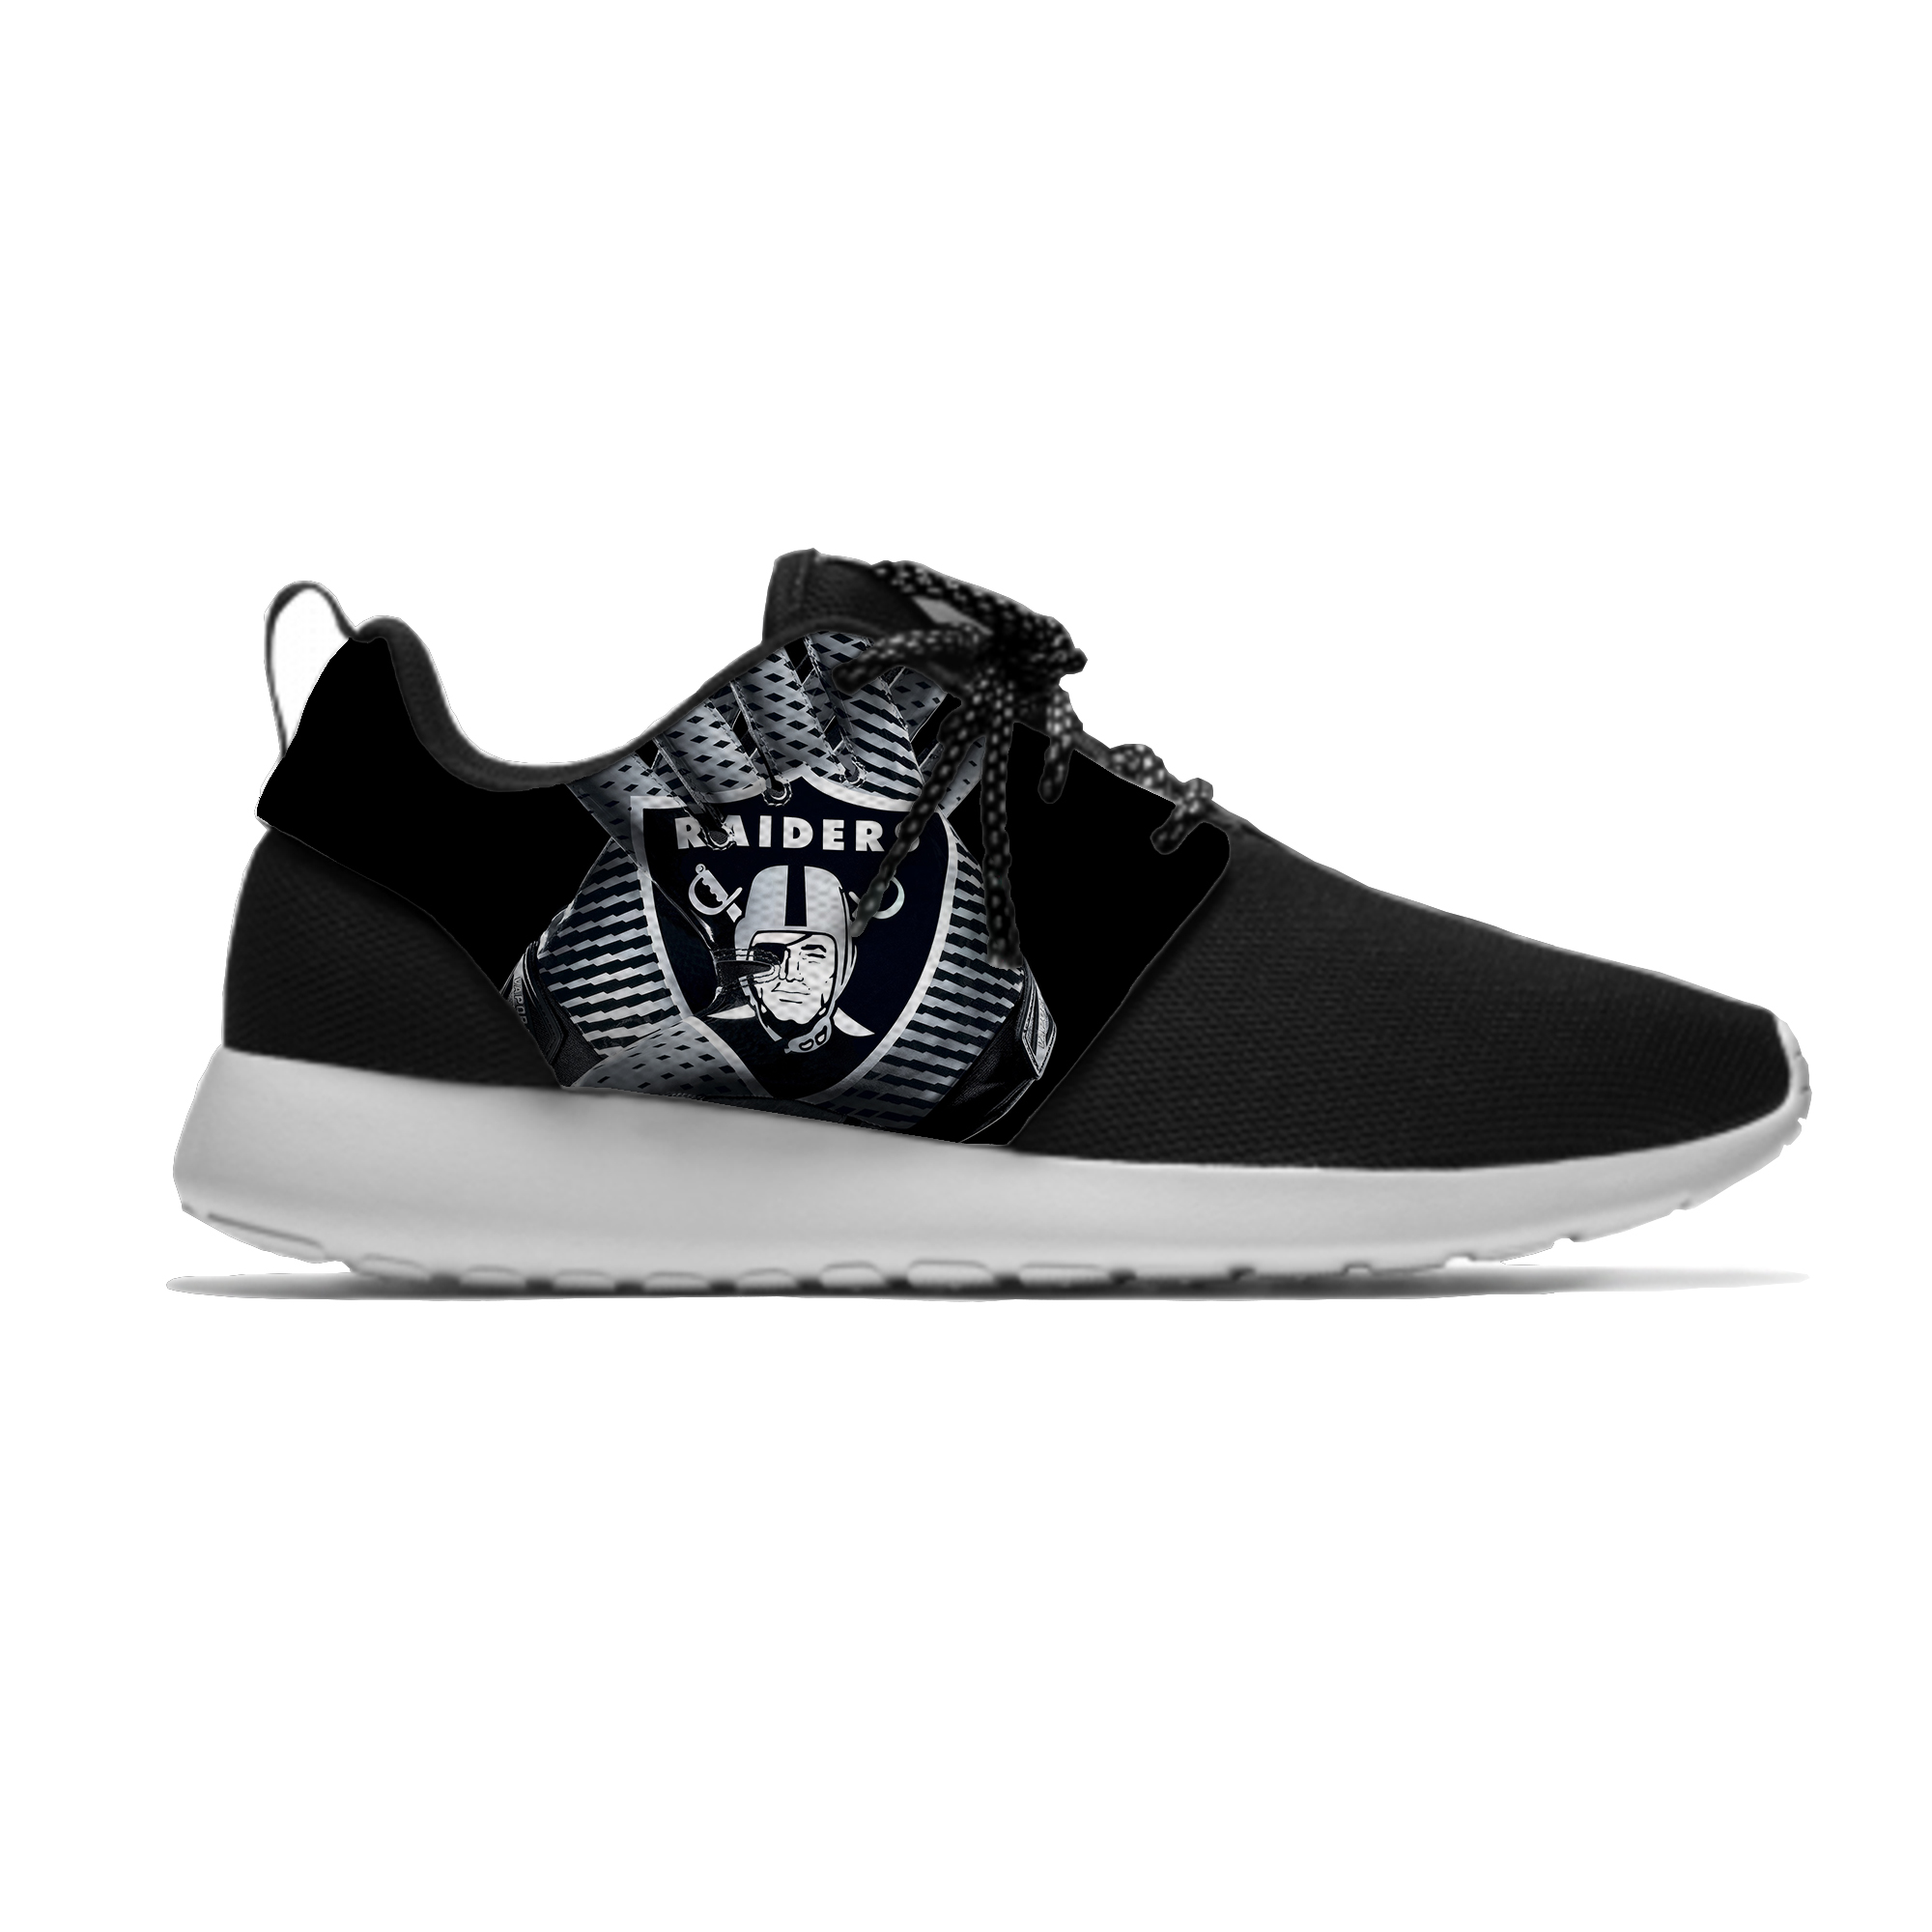 Raiders Breathable Casual Sneakers Men/Women Lightweight Sport Shoes Oakland Football Fans Running Meshy Shoes